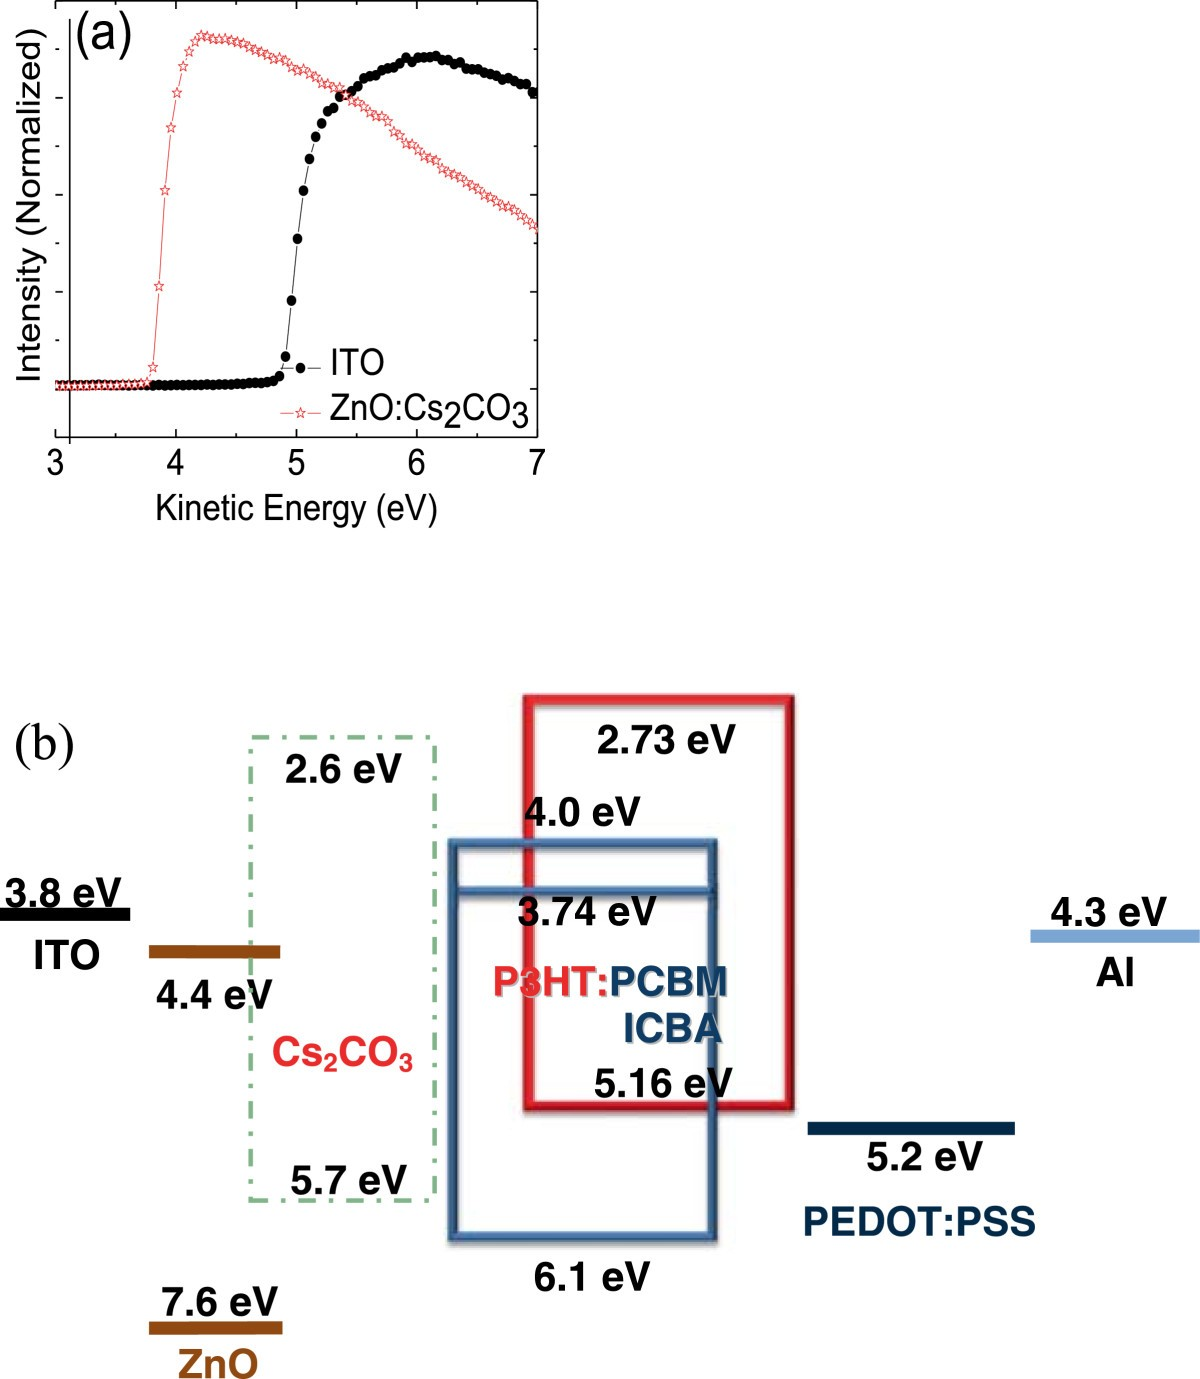 Effect Of Znocs2co3 On The Performance Organic Photovoltaics Friend Description Ev Electrical Wiring Diagrams Schematics And Figure 1 Detailed Values Extracted From Ups Spectra Schematic